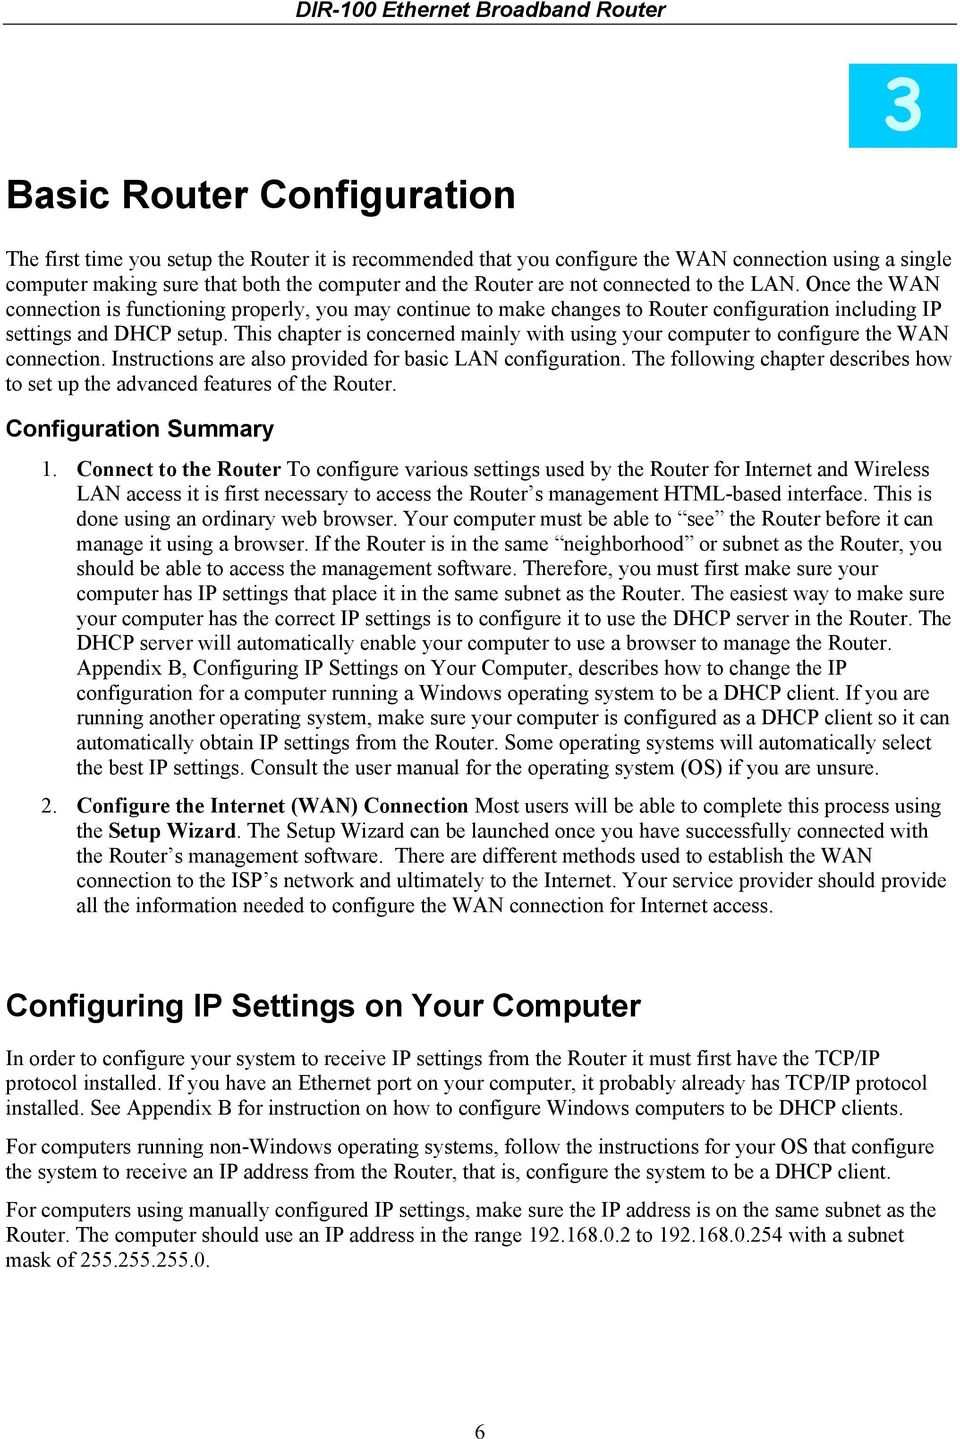 This chapter is concerned mainly with using your computer to configure the WAN connection. Instructions are also provided for basic LAN configuration.